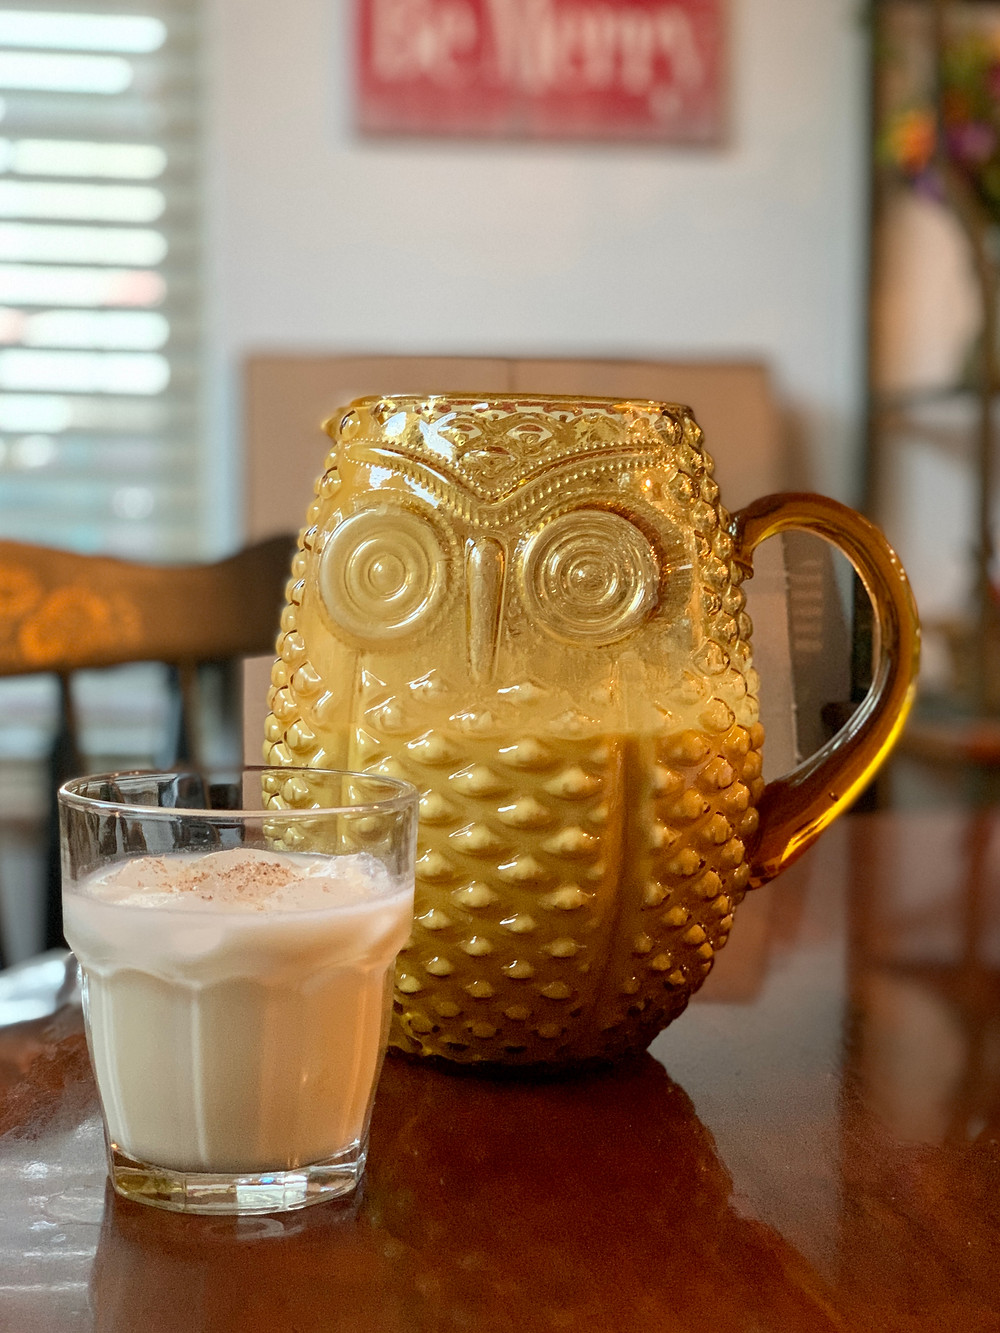 Yellow glass owl pitcher and glass of coquito on a table